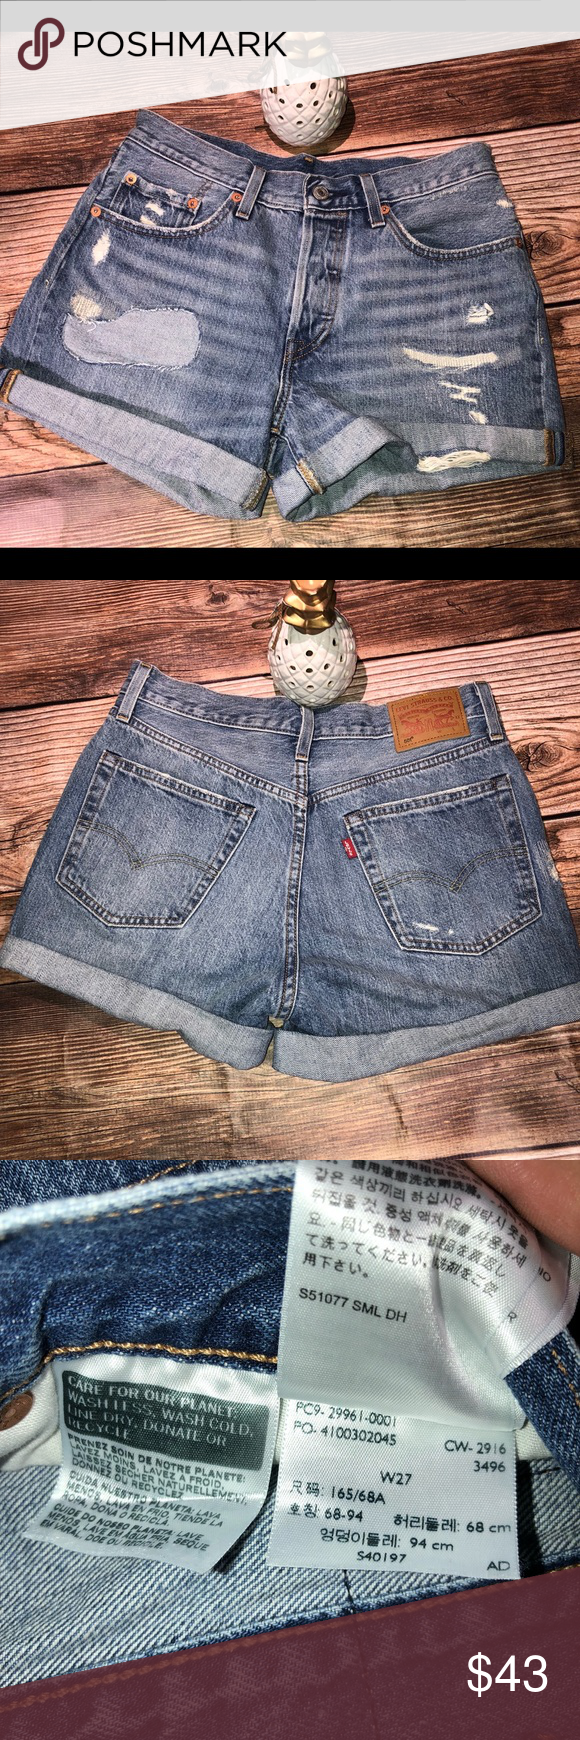 109727bfb8 Levis 501® LONG SHORTS high waisted Used once in excellent condition no  flaws Levi's Shorts Jean Shorts